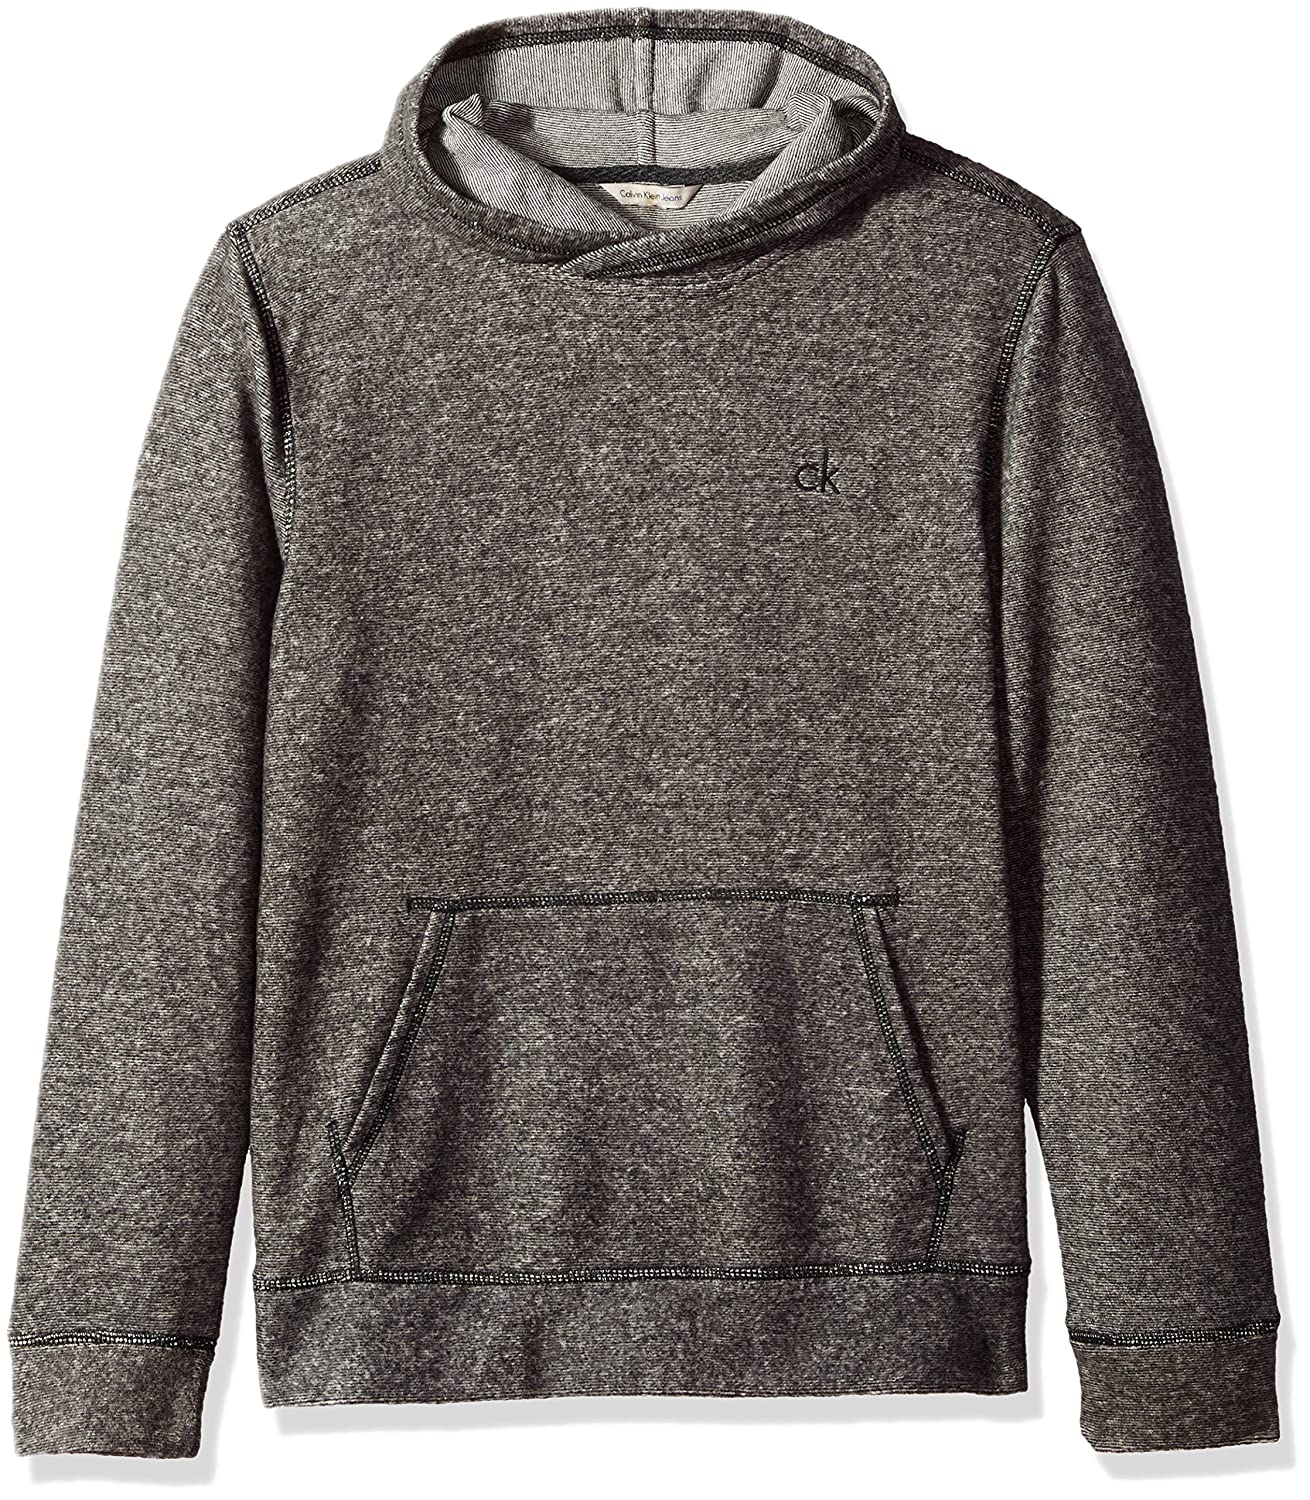 2c8323e050 41% Cotton, 37% Polyester, 22% Viscose Imported Pull On closure. Machine  Wash This cozy sweatshirt features a stylish crossover hood design